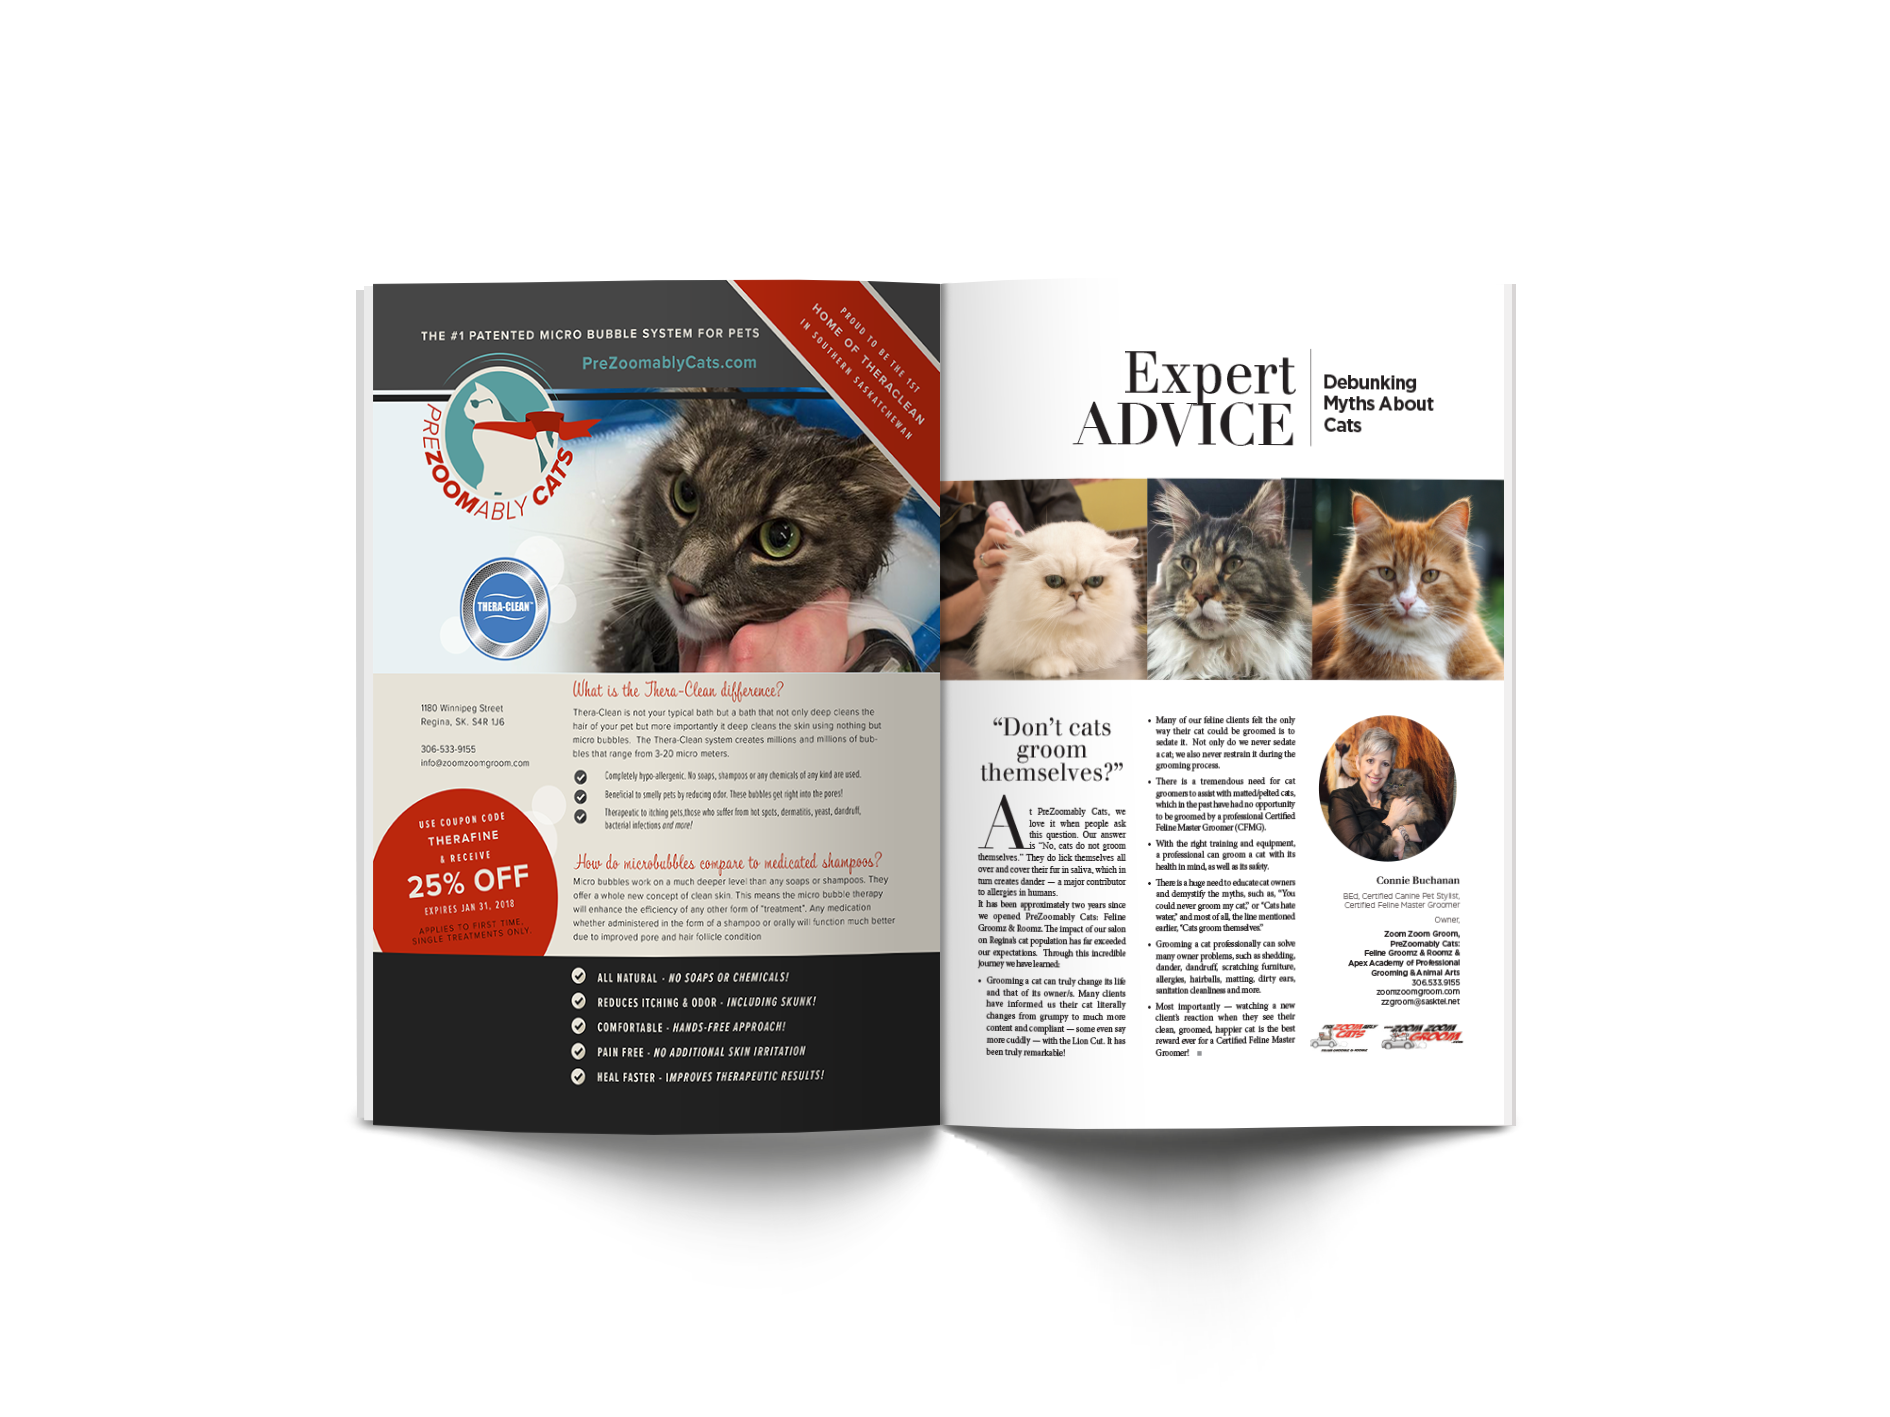 Expert Advice by Connie Buchanan: Debunking Myths About Cats